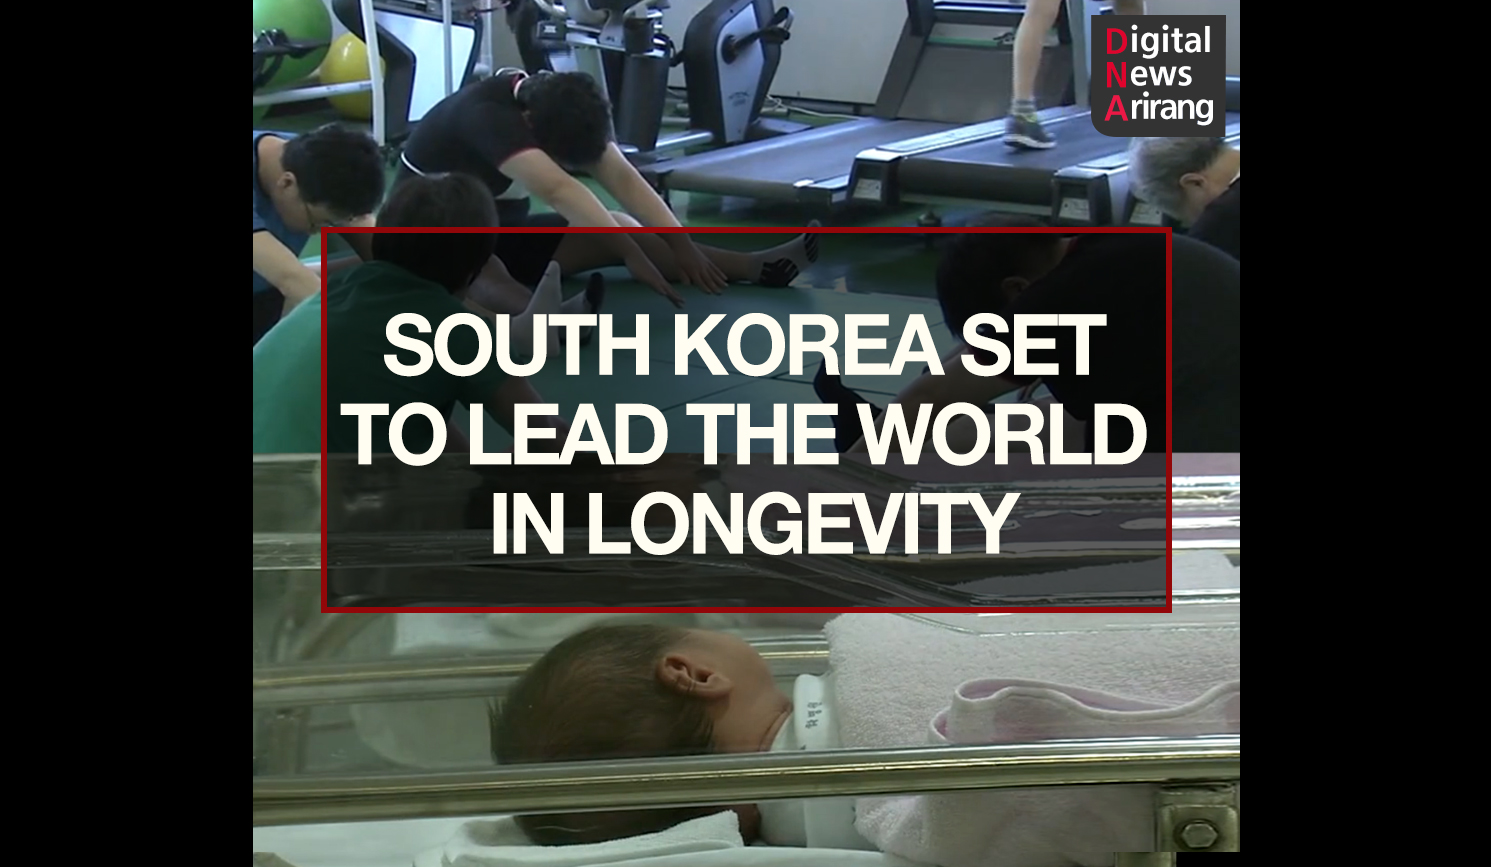 [DNA]South Korea Set to Lead the World in Longevity